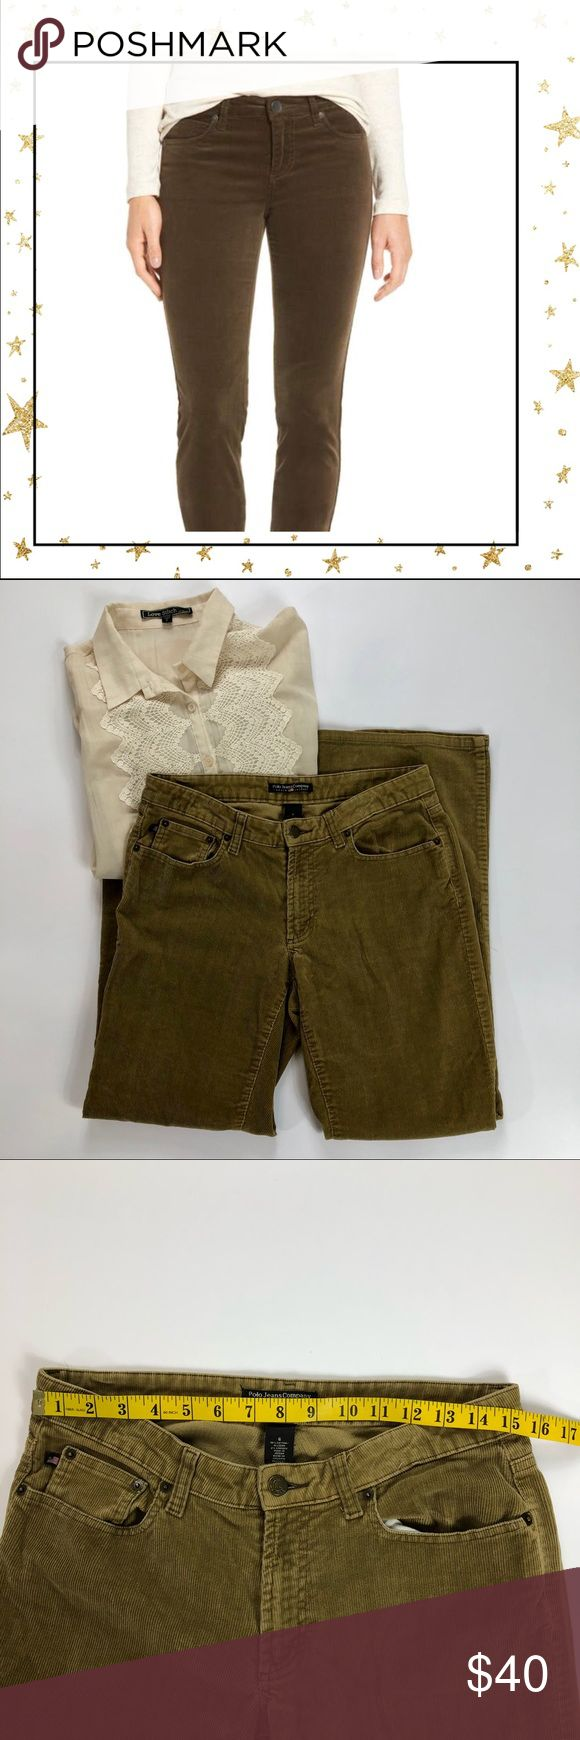 Polo Jeans Co R.Lauren Olive Green corduroy pants First picture is for references only. Olive green, corduroy, cotton pants. Good condition. Polo Jeans Co by  Ralph Lauren Pants Boot Cut & Flare